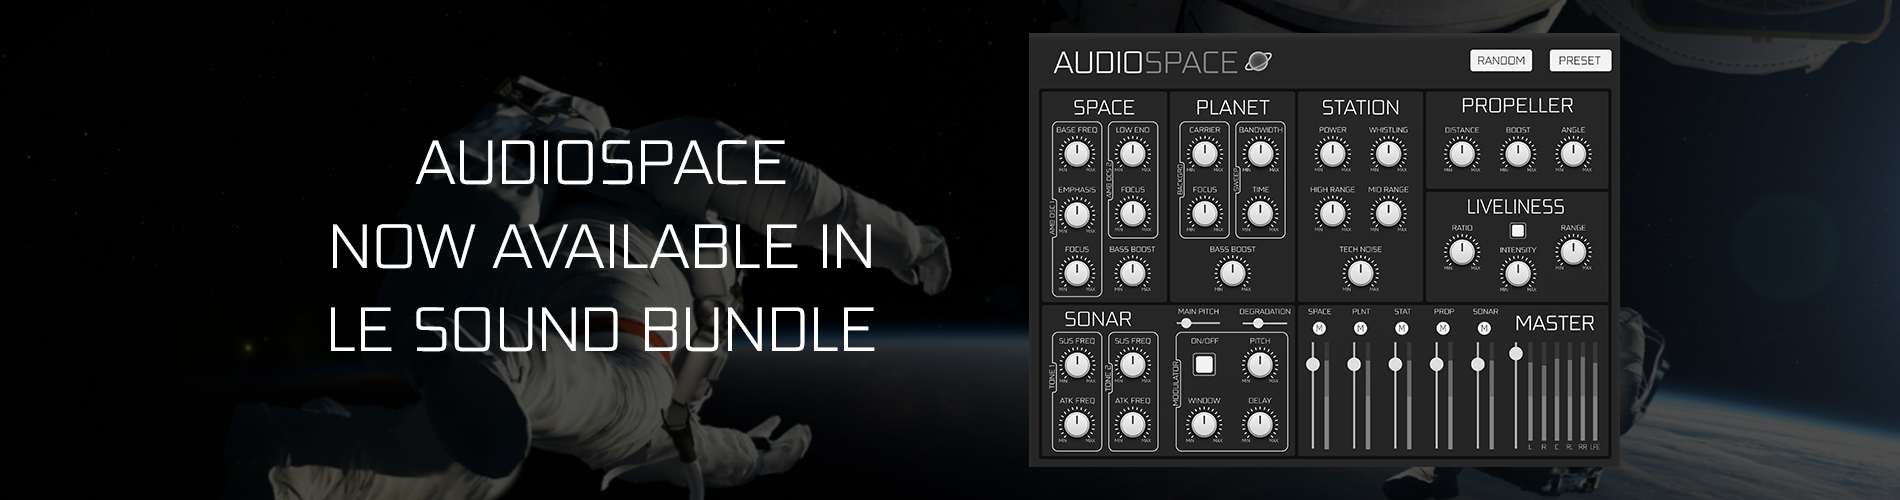 home_page_banner_audio_space_01